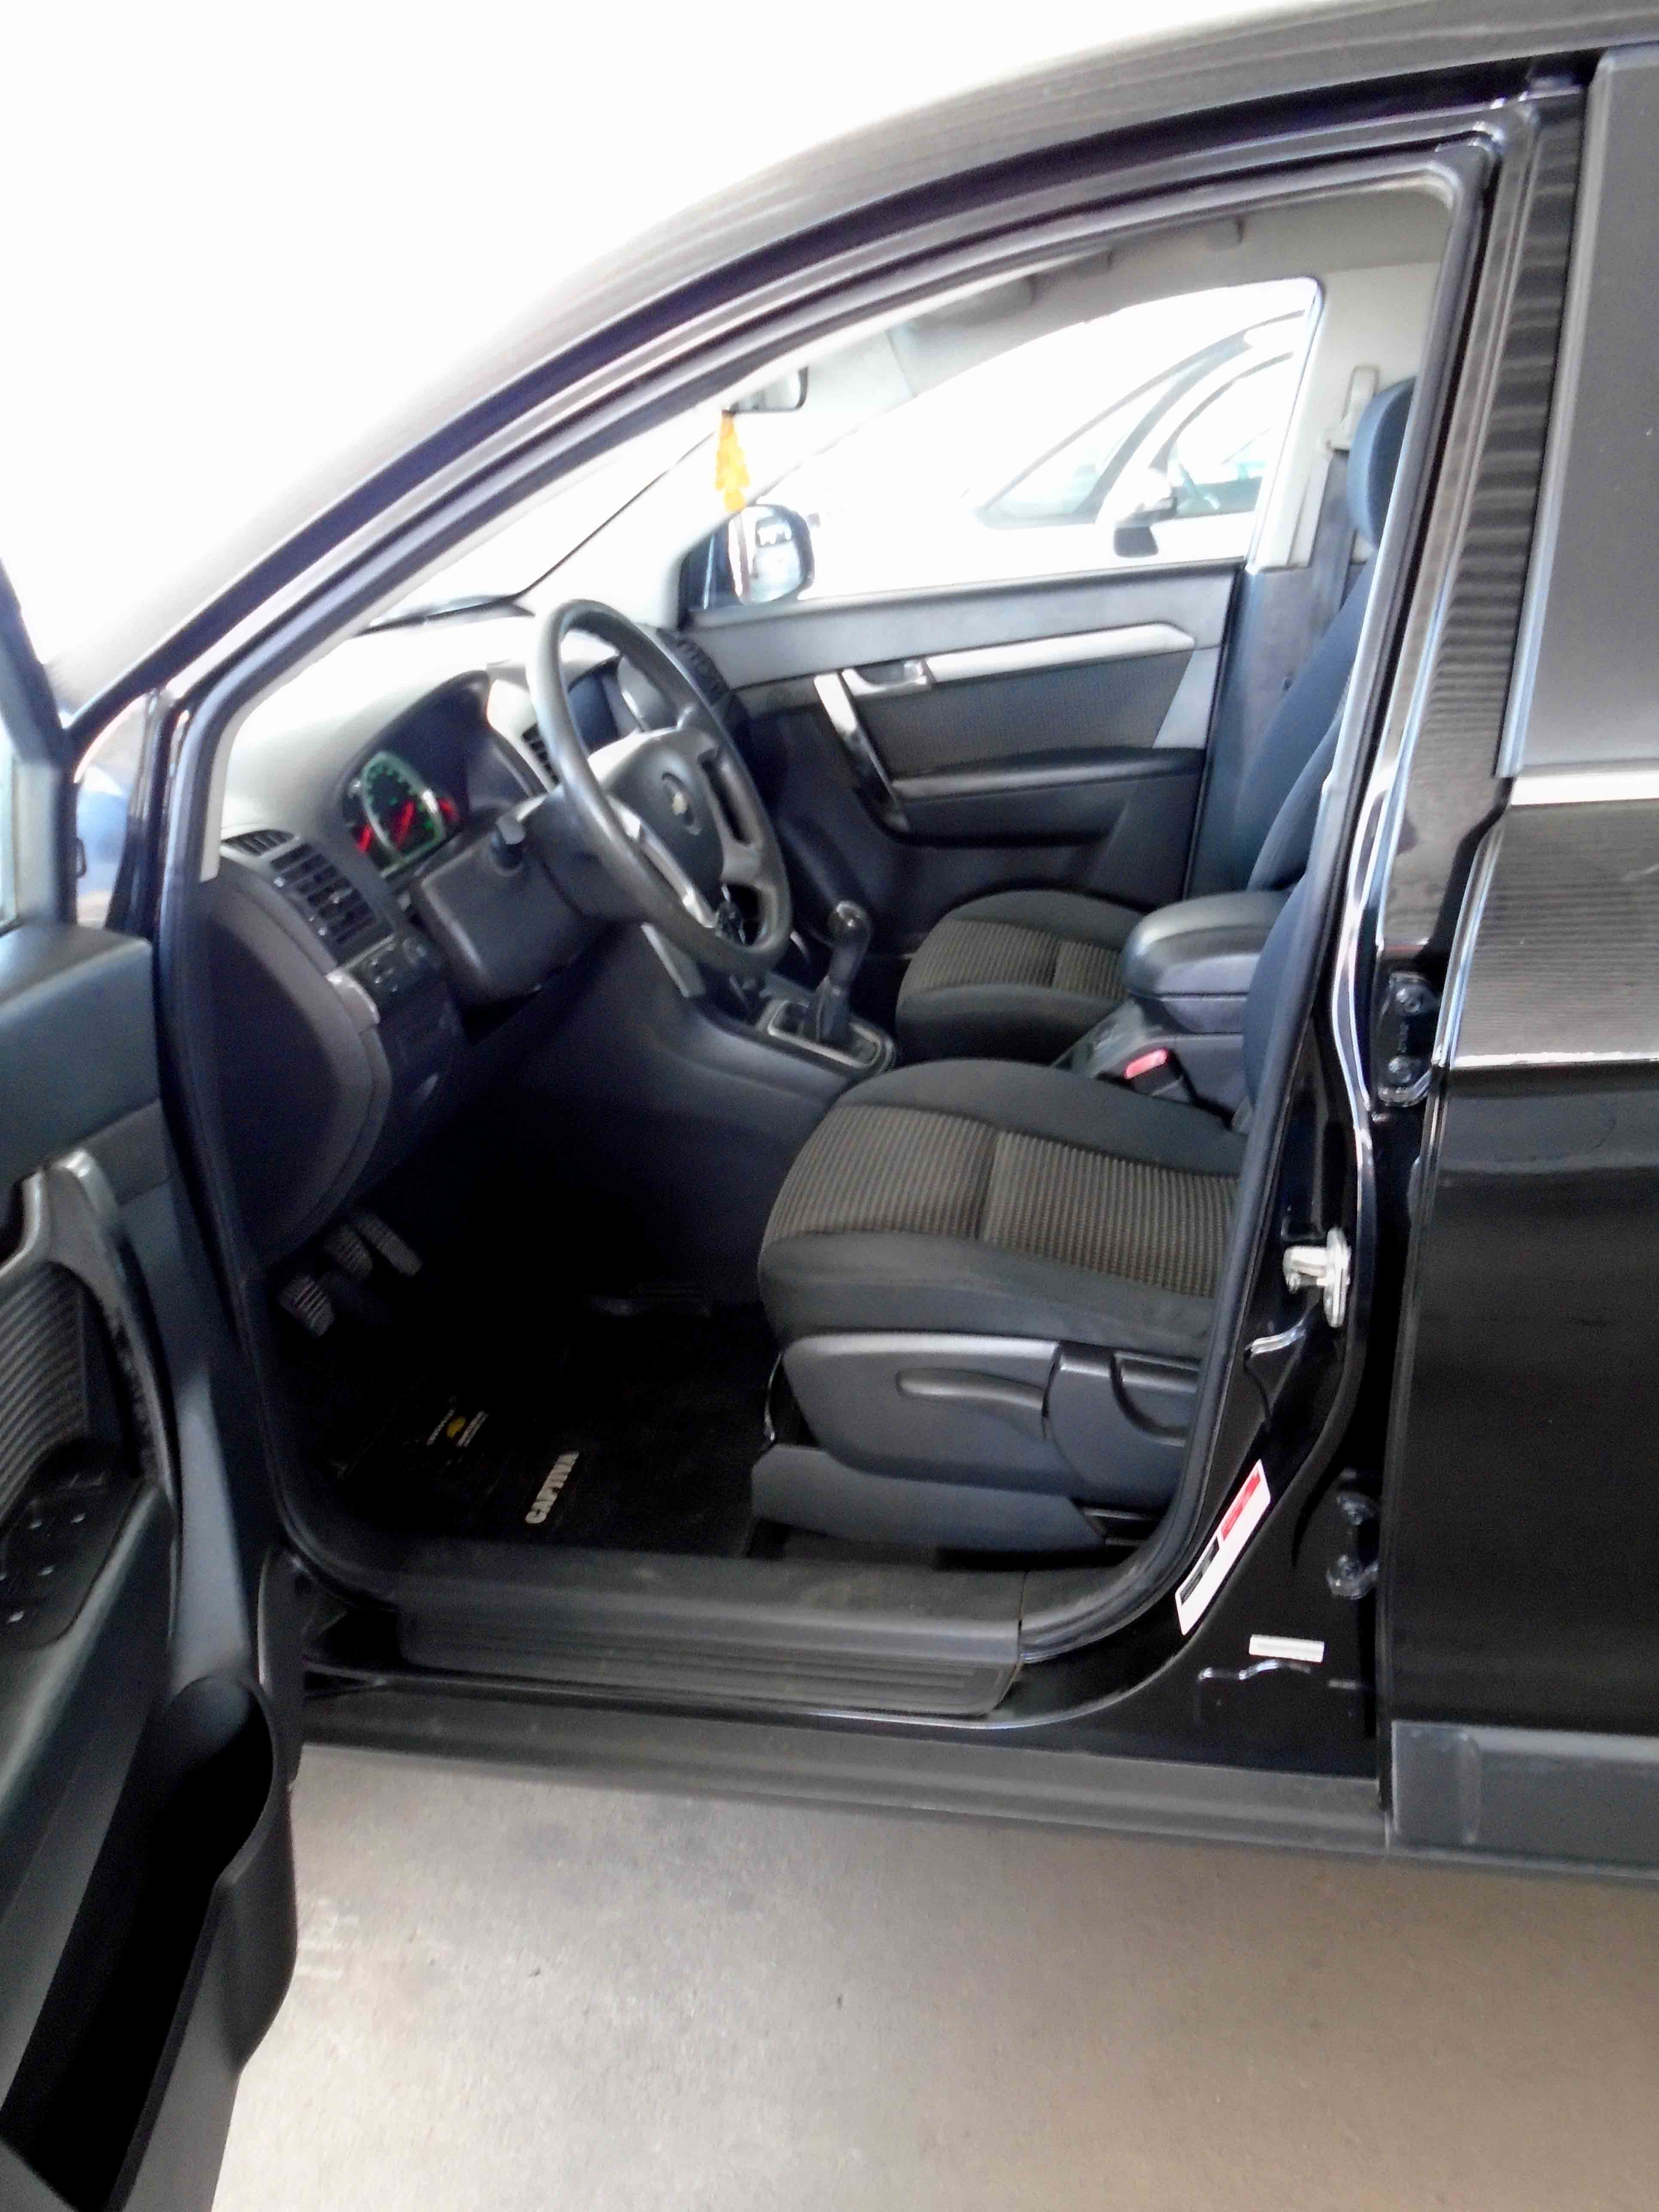 2008 CHEVROLET CAPTIVA LT 2,4